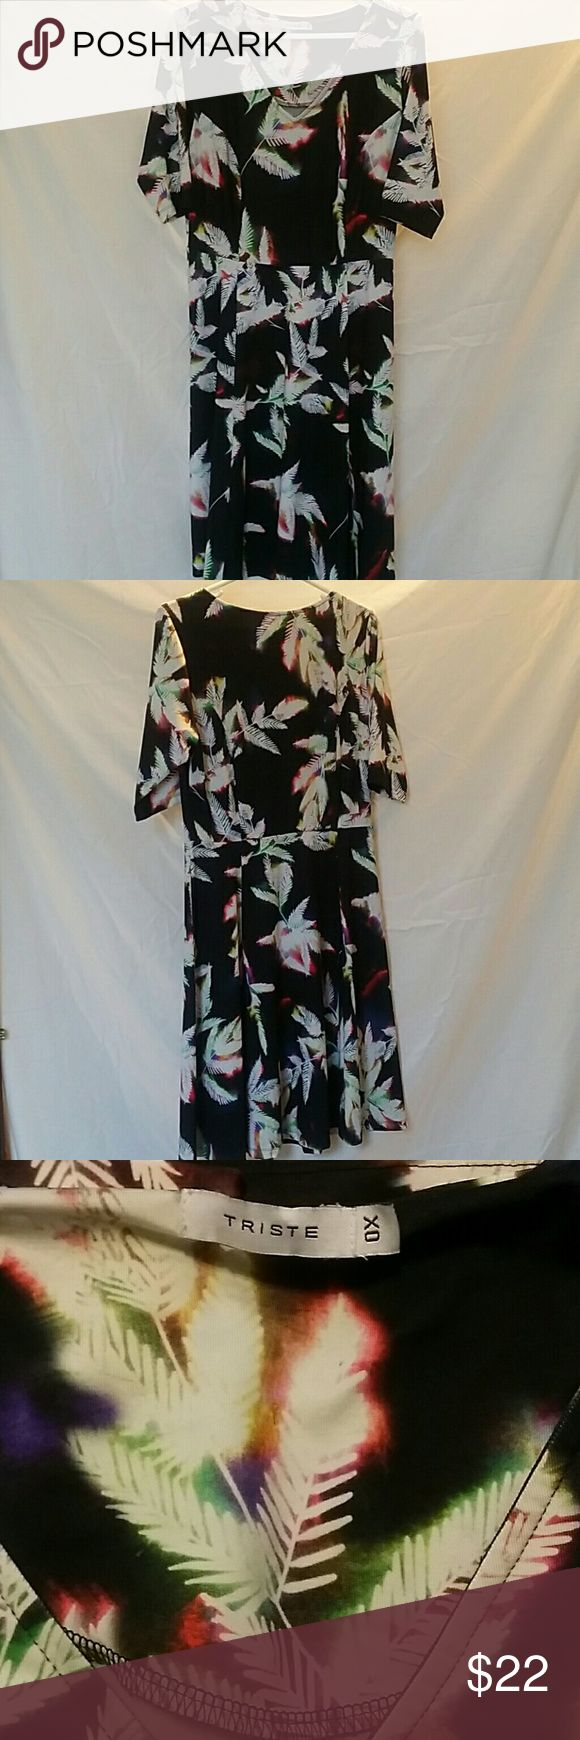 Black leaf pattern dress Super soft material. Quarter length sleeves. Flares out at bottom. Form flattering Perfect for summer.  Trist brand Size 0X Only worn once.  Make an offer. Don't forget to bundle. Smoke and pet free home. For sale on another site as well. Triste Dresses Midi